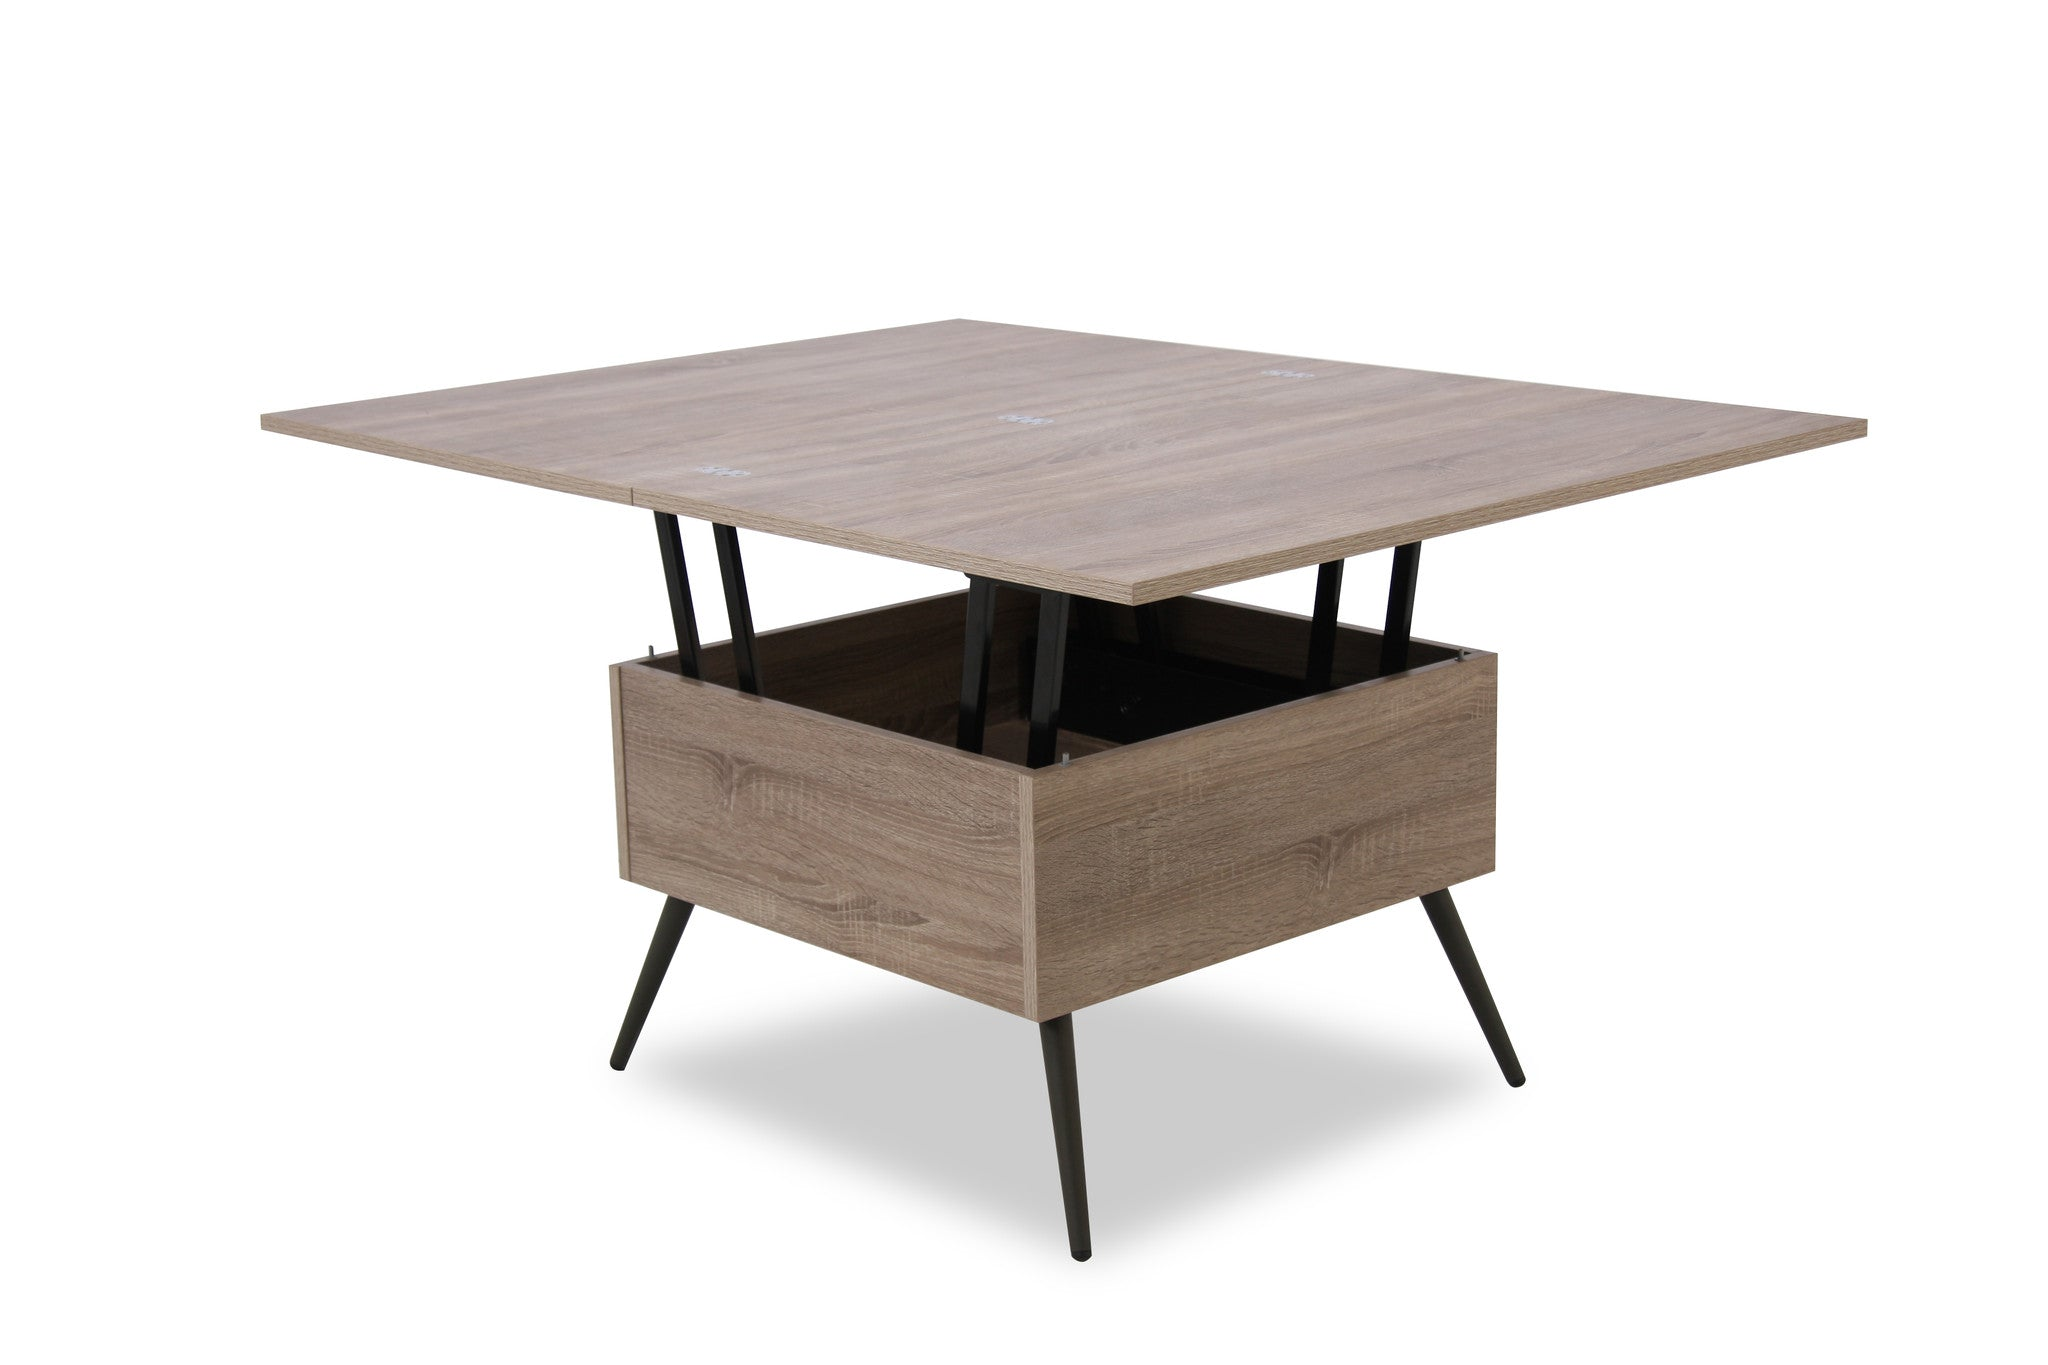 Functional Tables More Than Just A Sofa